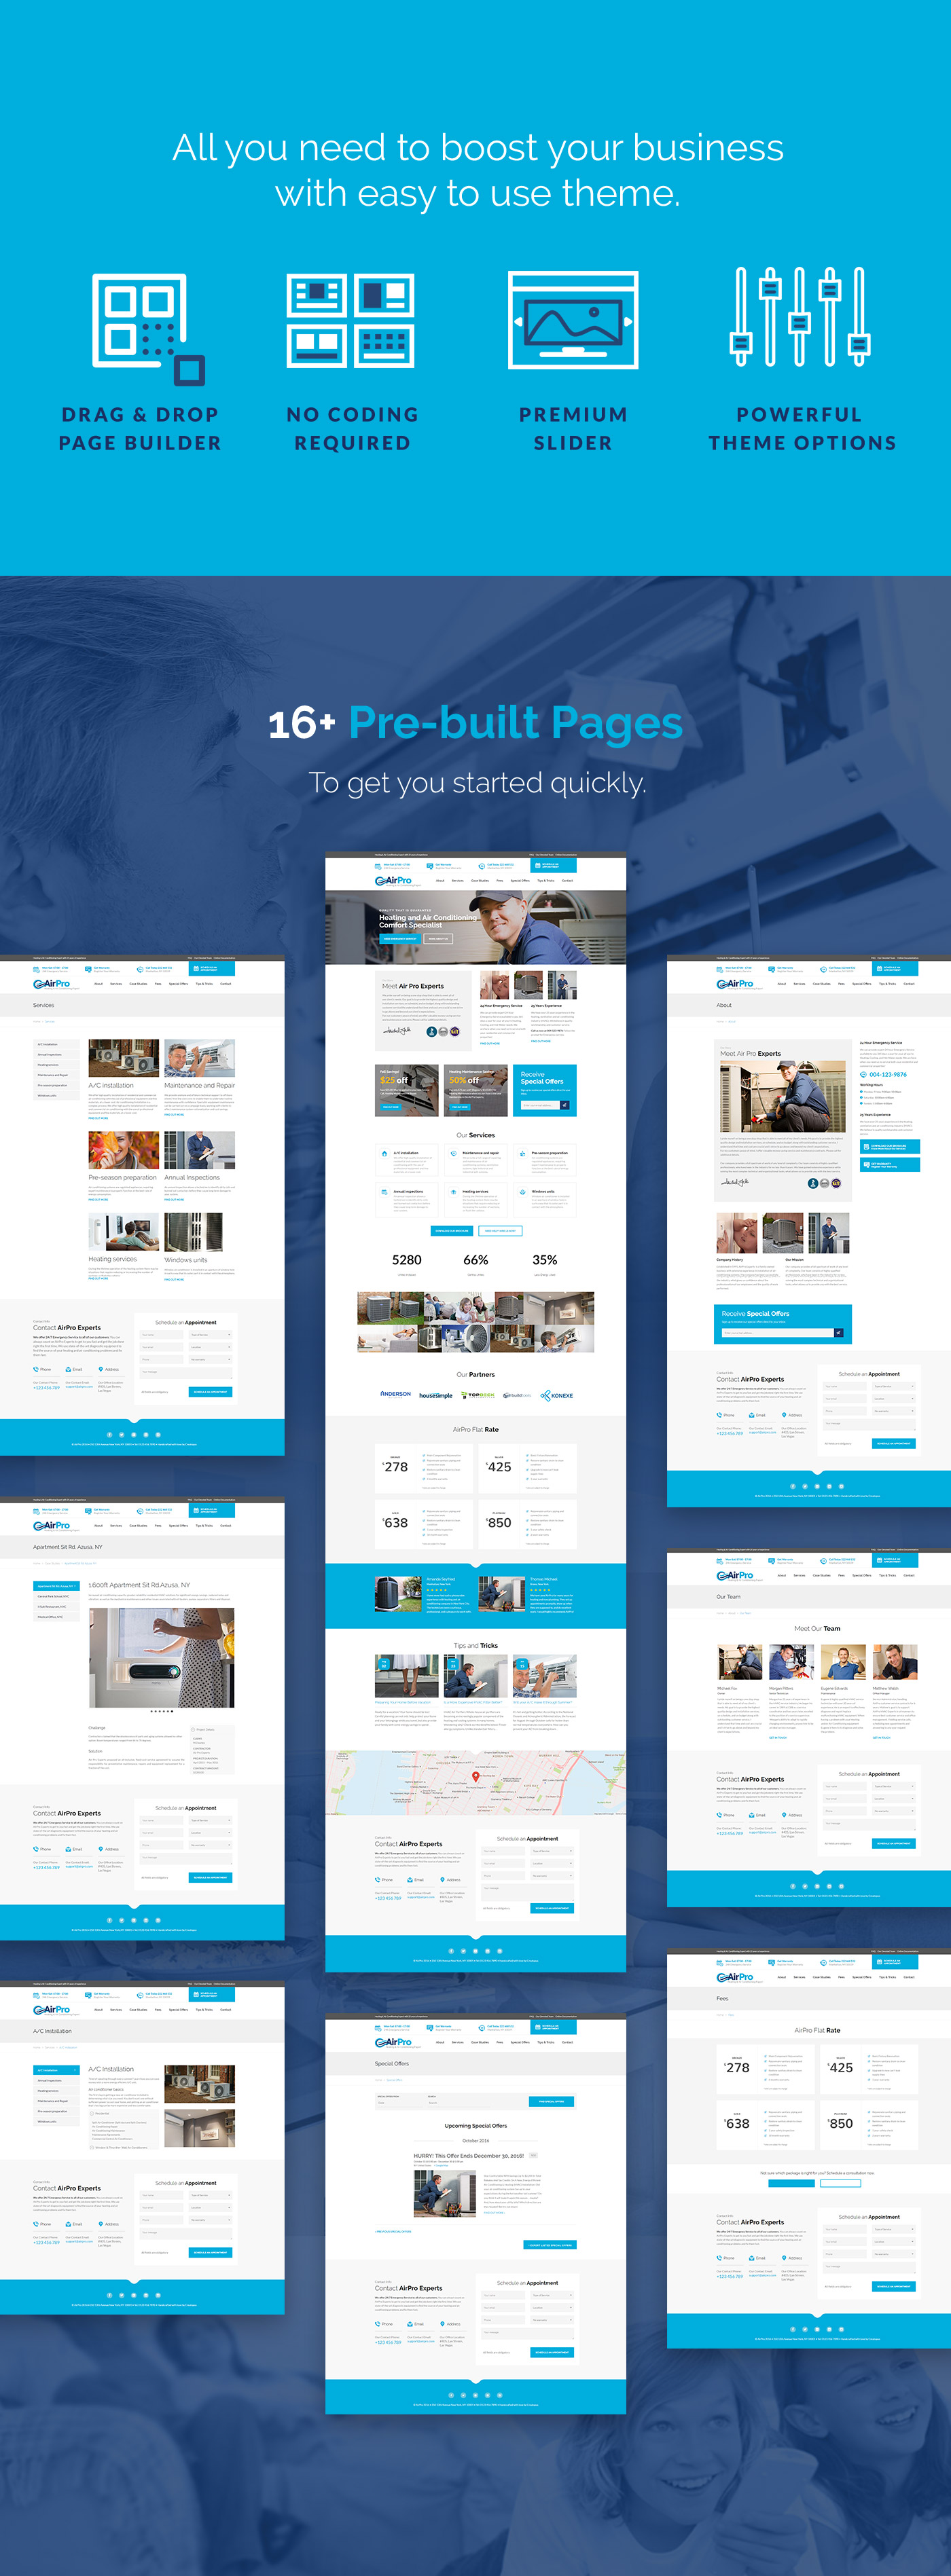 AirPro-Theme-Prebuilt-Pages-2